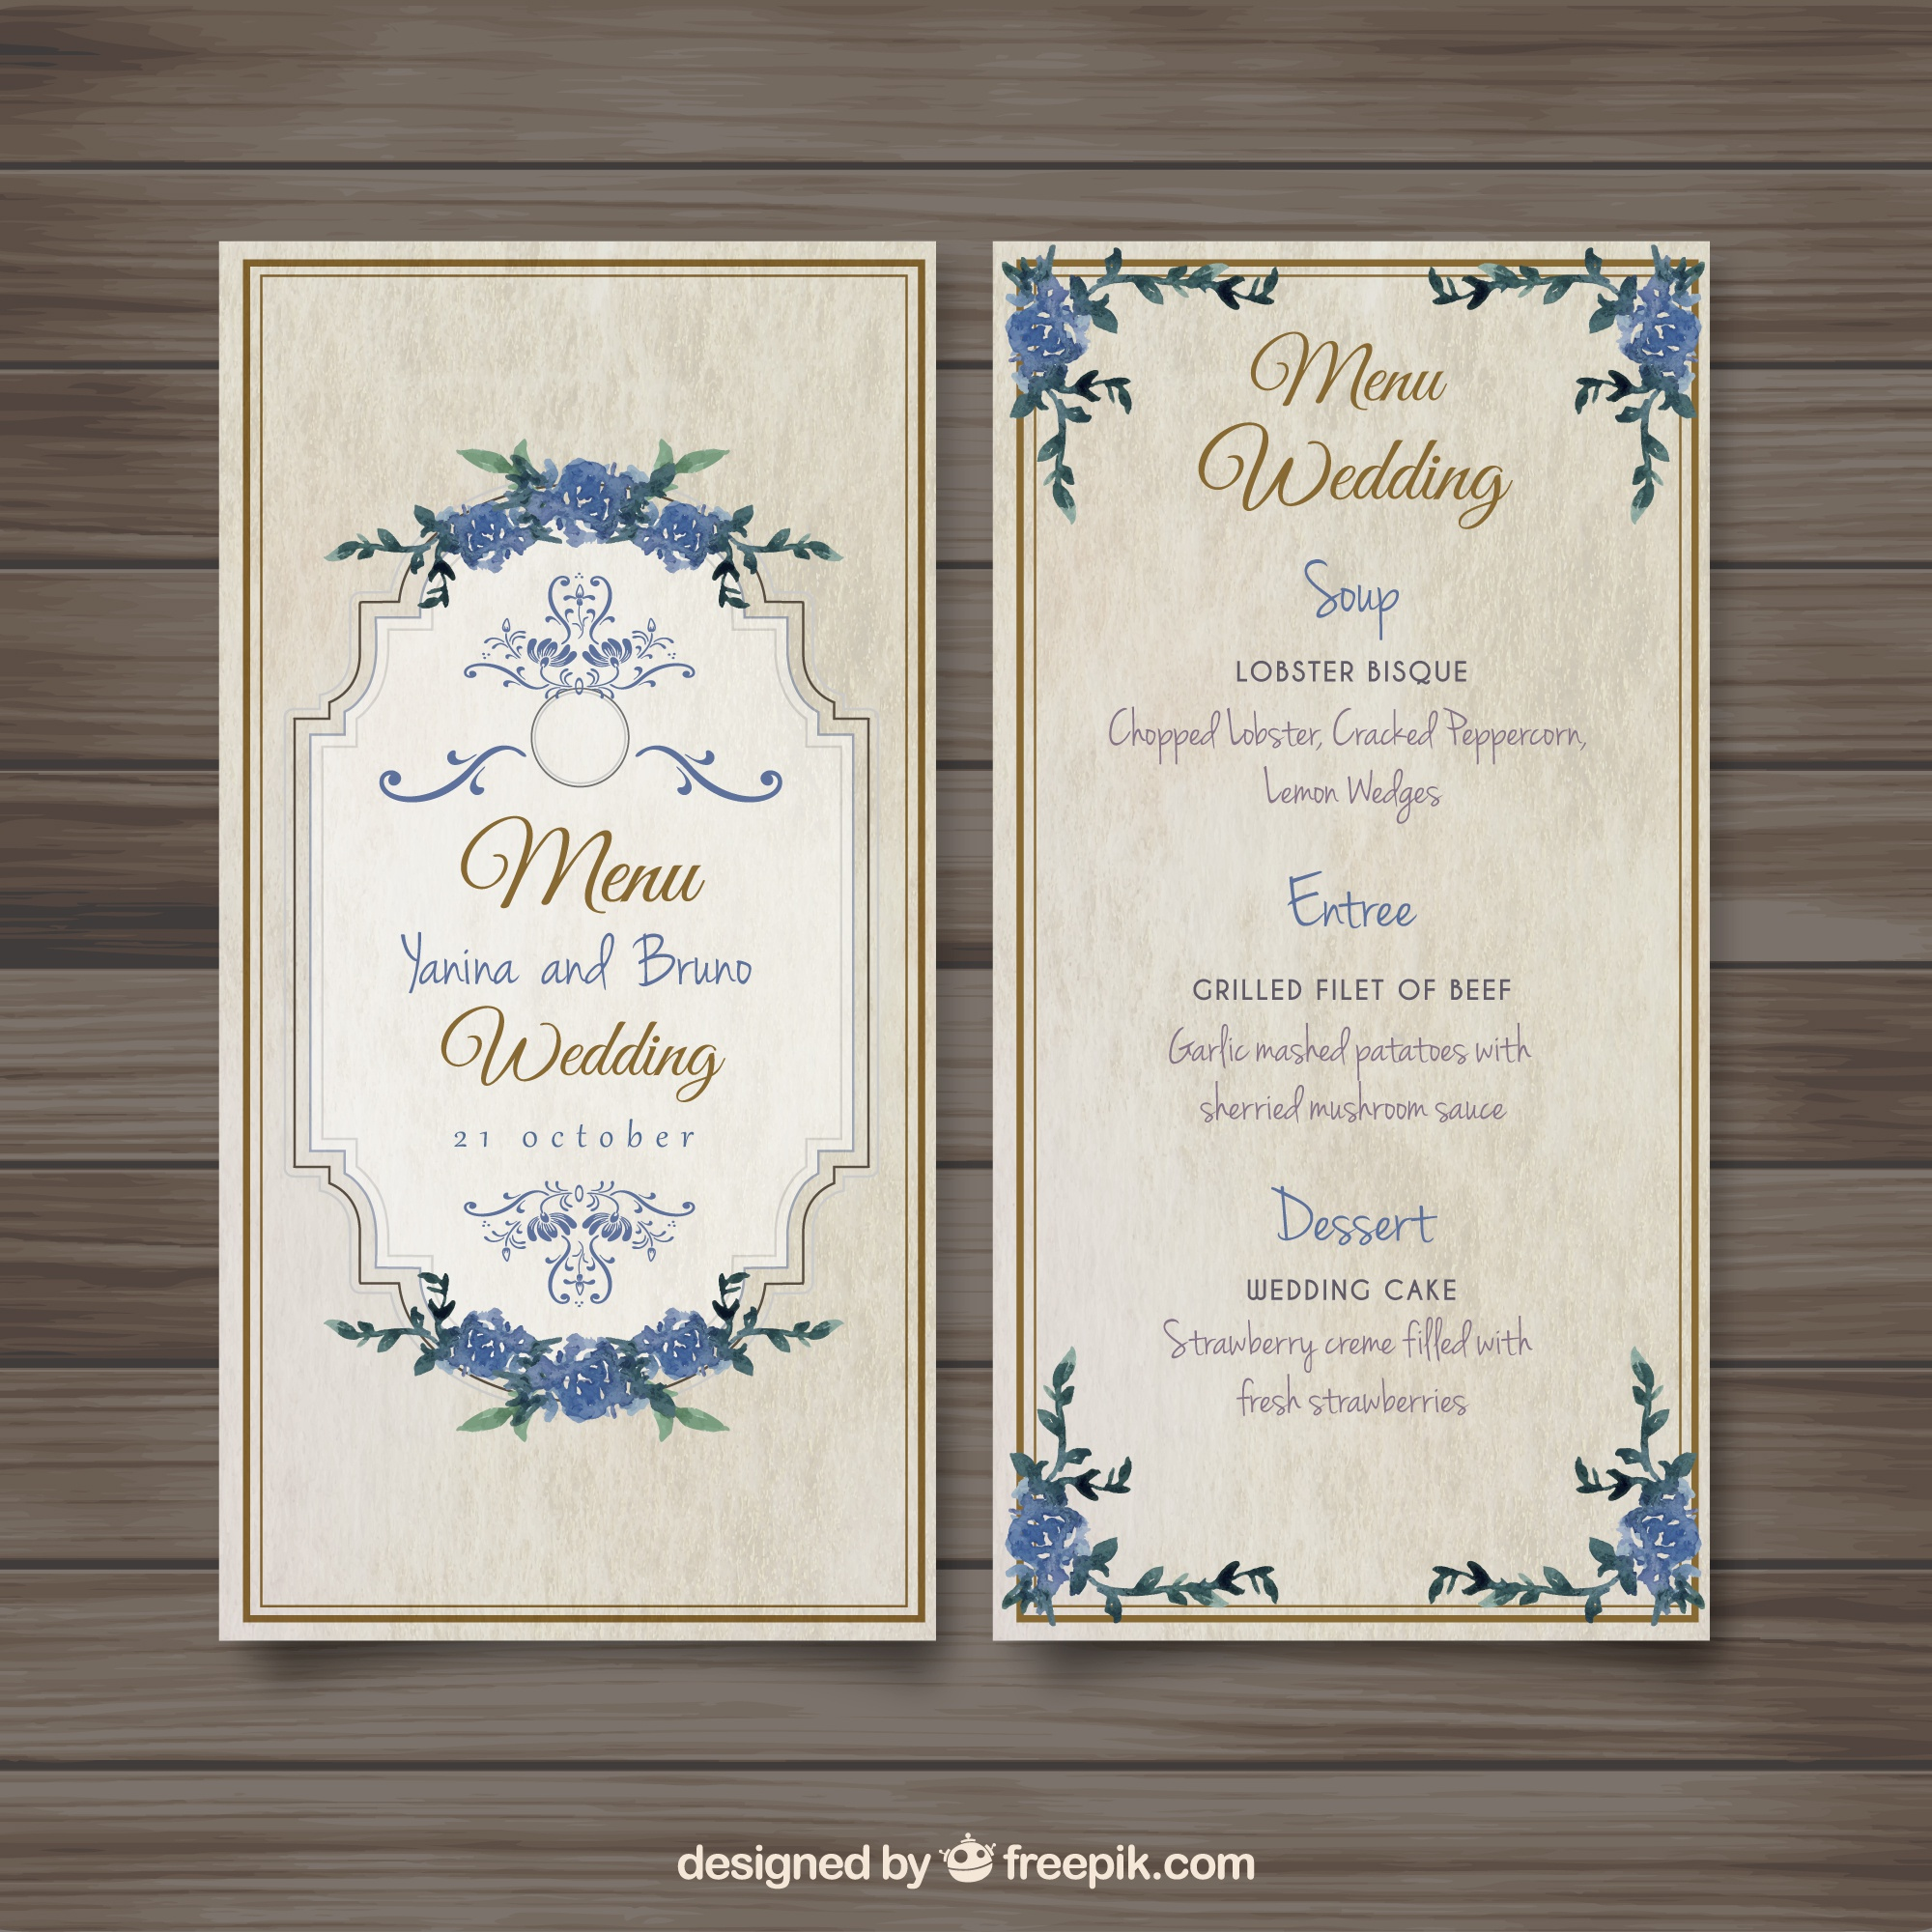 Menu antiquado do casamento